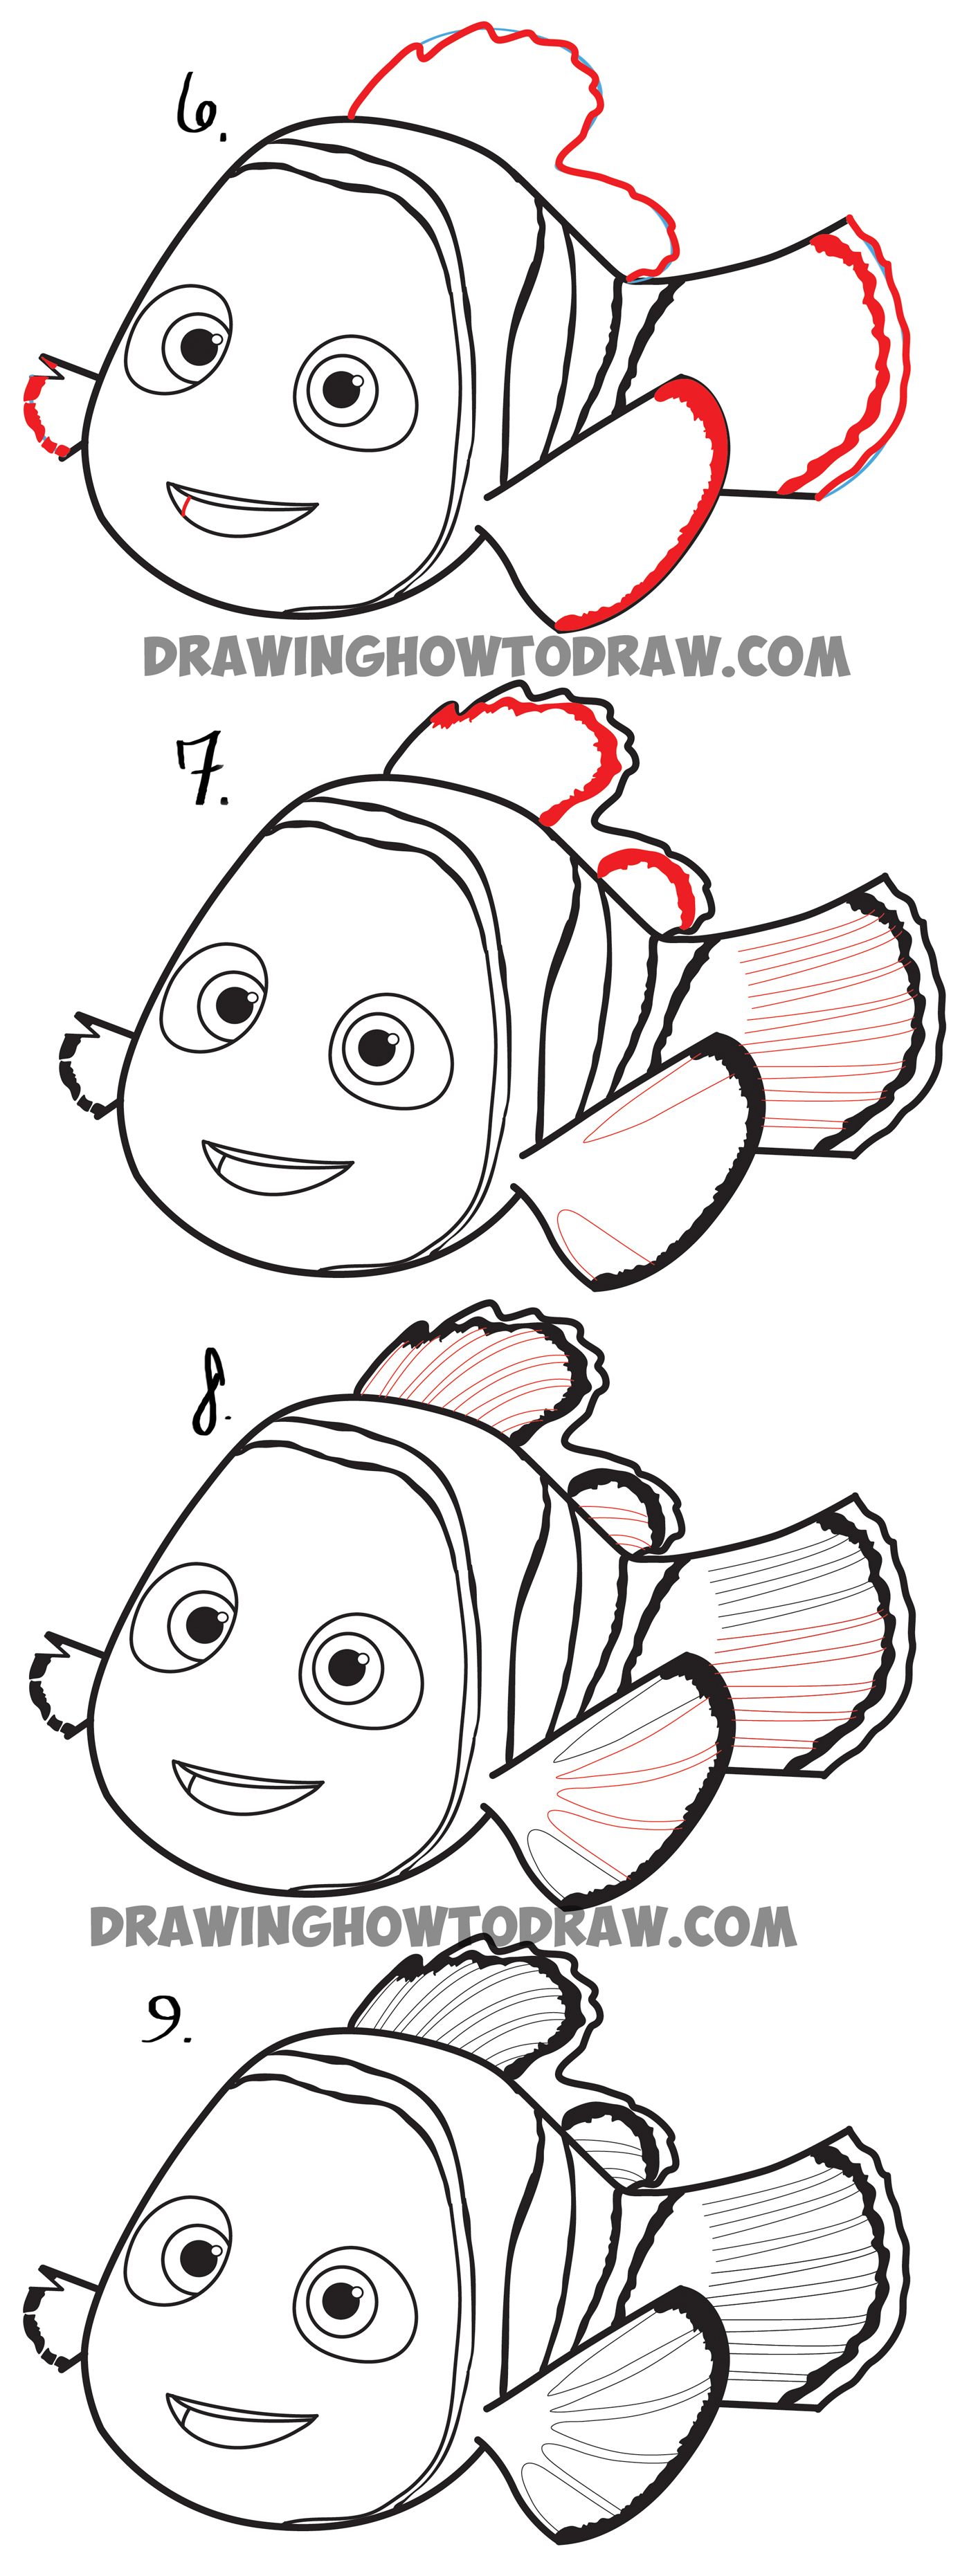 How to draw Nemo from Finding Dory Movie - Simple Step by Step Drawing Tutorial